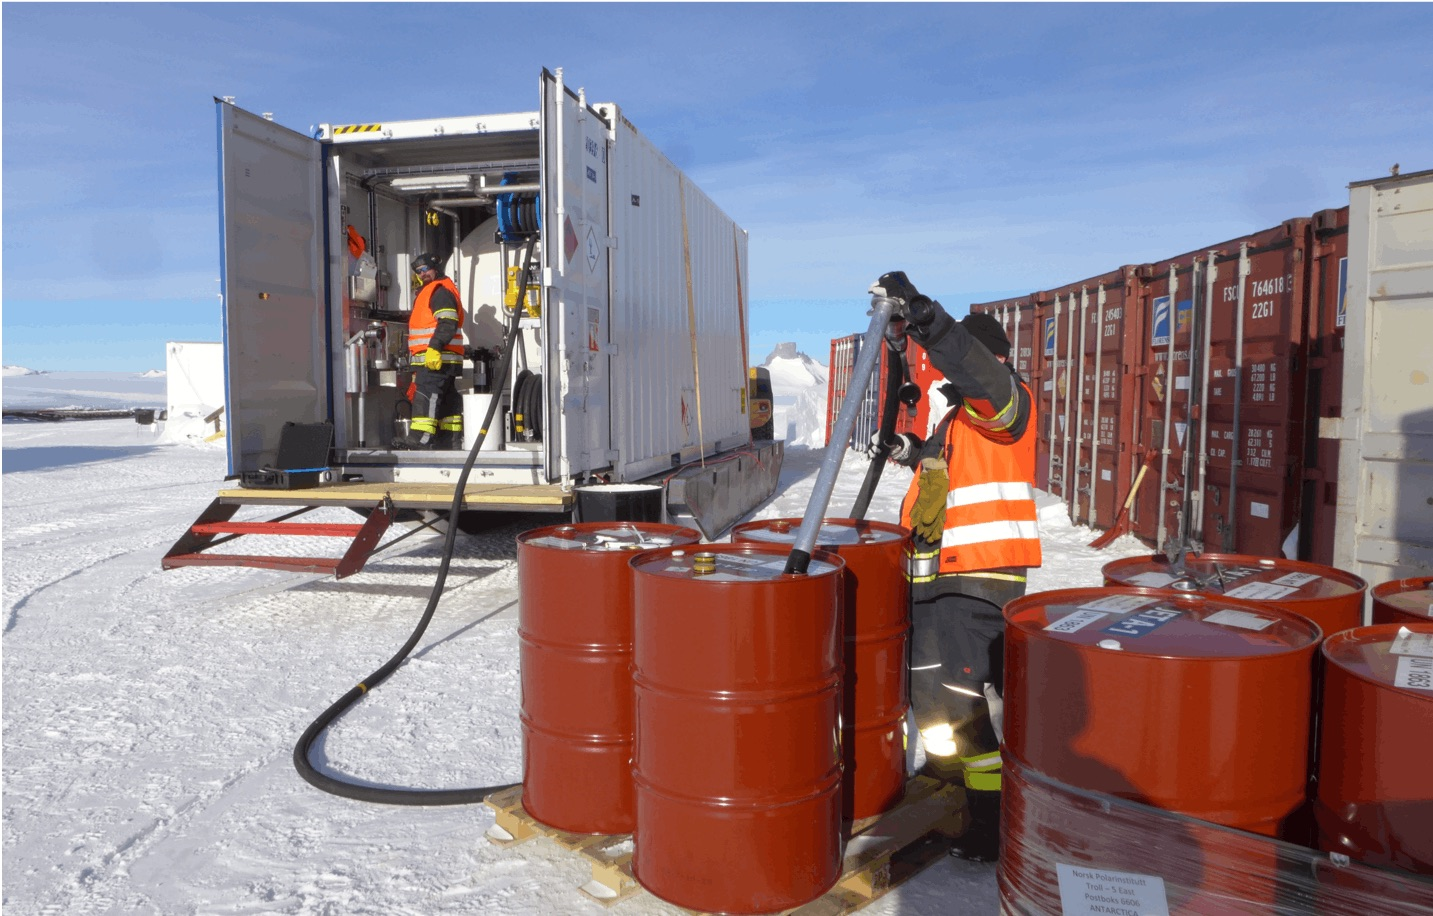 Staff transfer fuel from 200 liter drums to a 16,000 liter tank pressure fueler